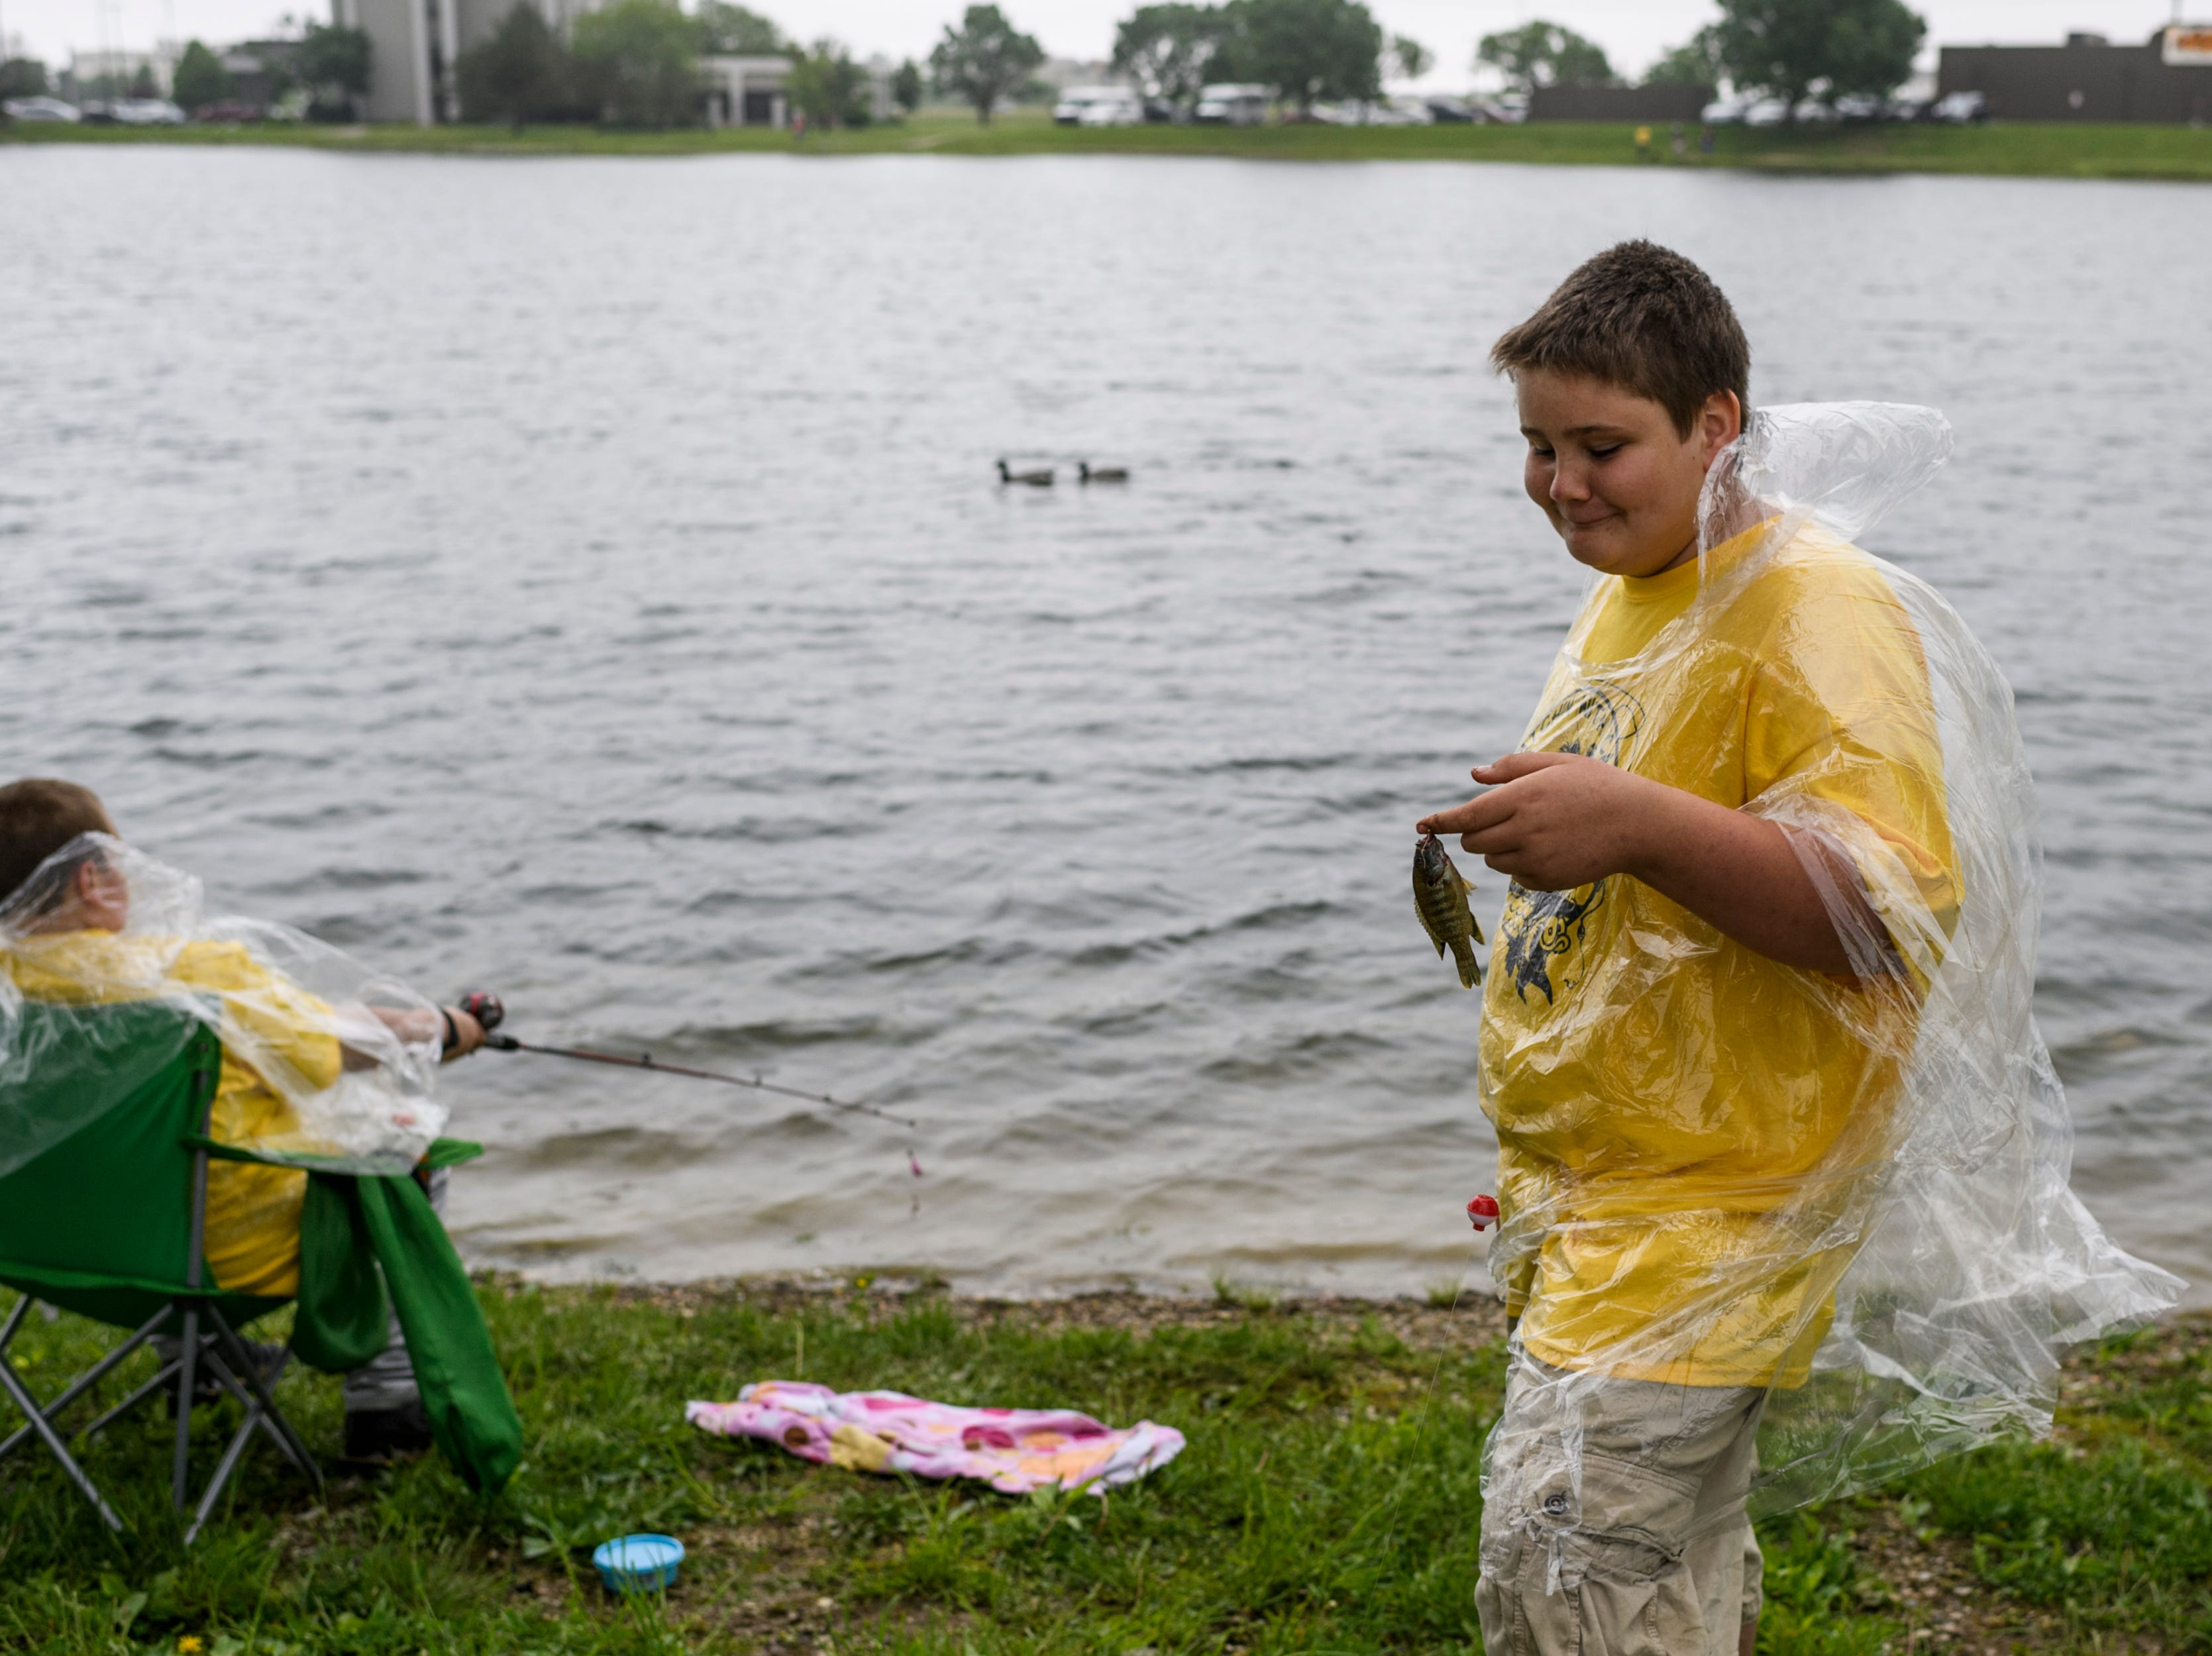 """Mt. Vernon Junior High student Anthony Muller, right, glances down proudly at his most recent catch as Gabe Hatch, left, waits for a bite on his line during the 12th annual """"Catchin' with Capin"""" event at Eagle Lake in Evansville, Ind., Friday, May 3, 2019."""